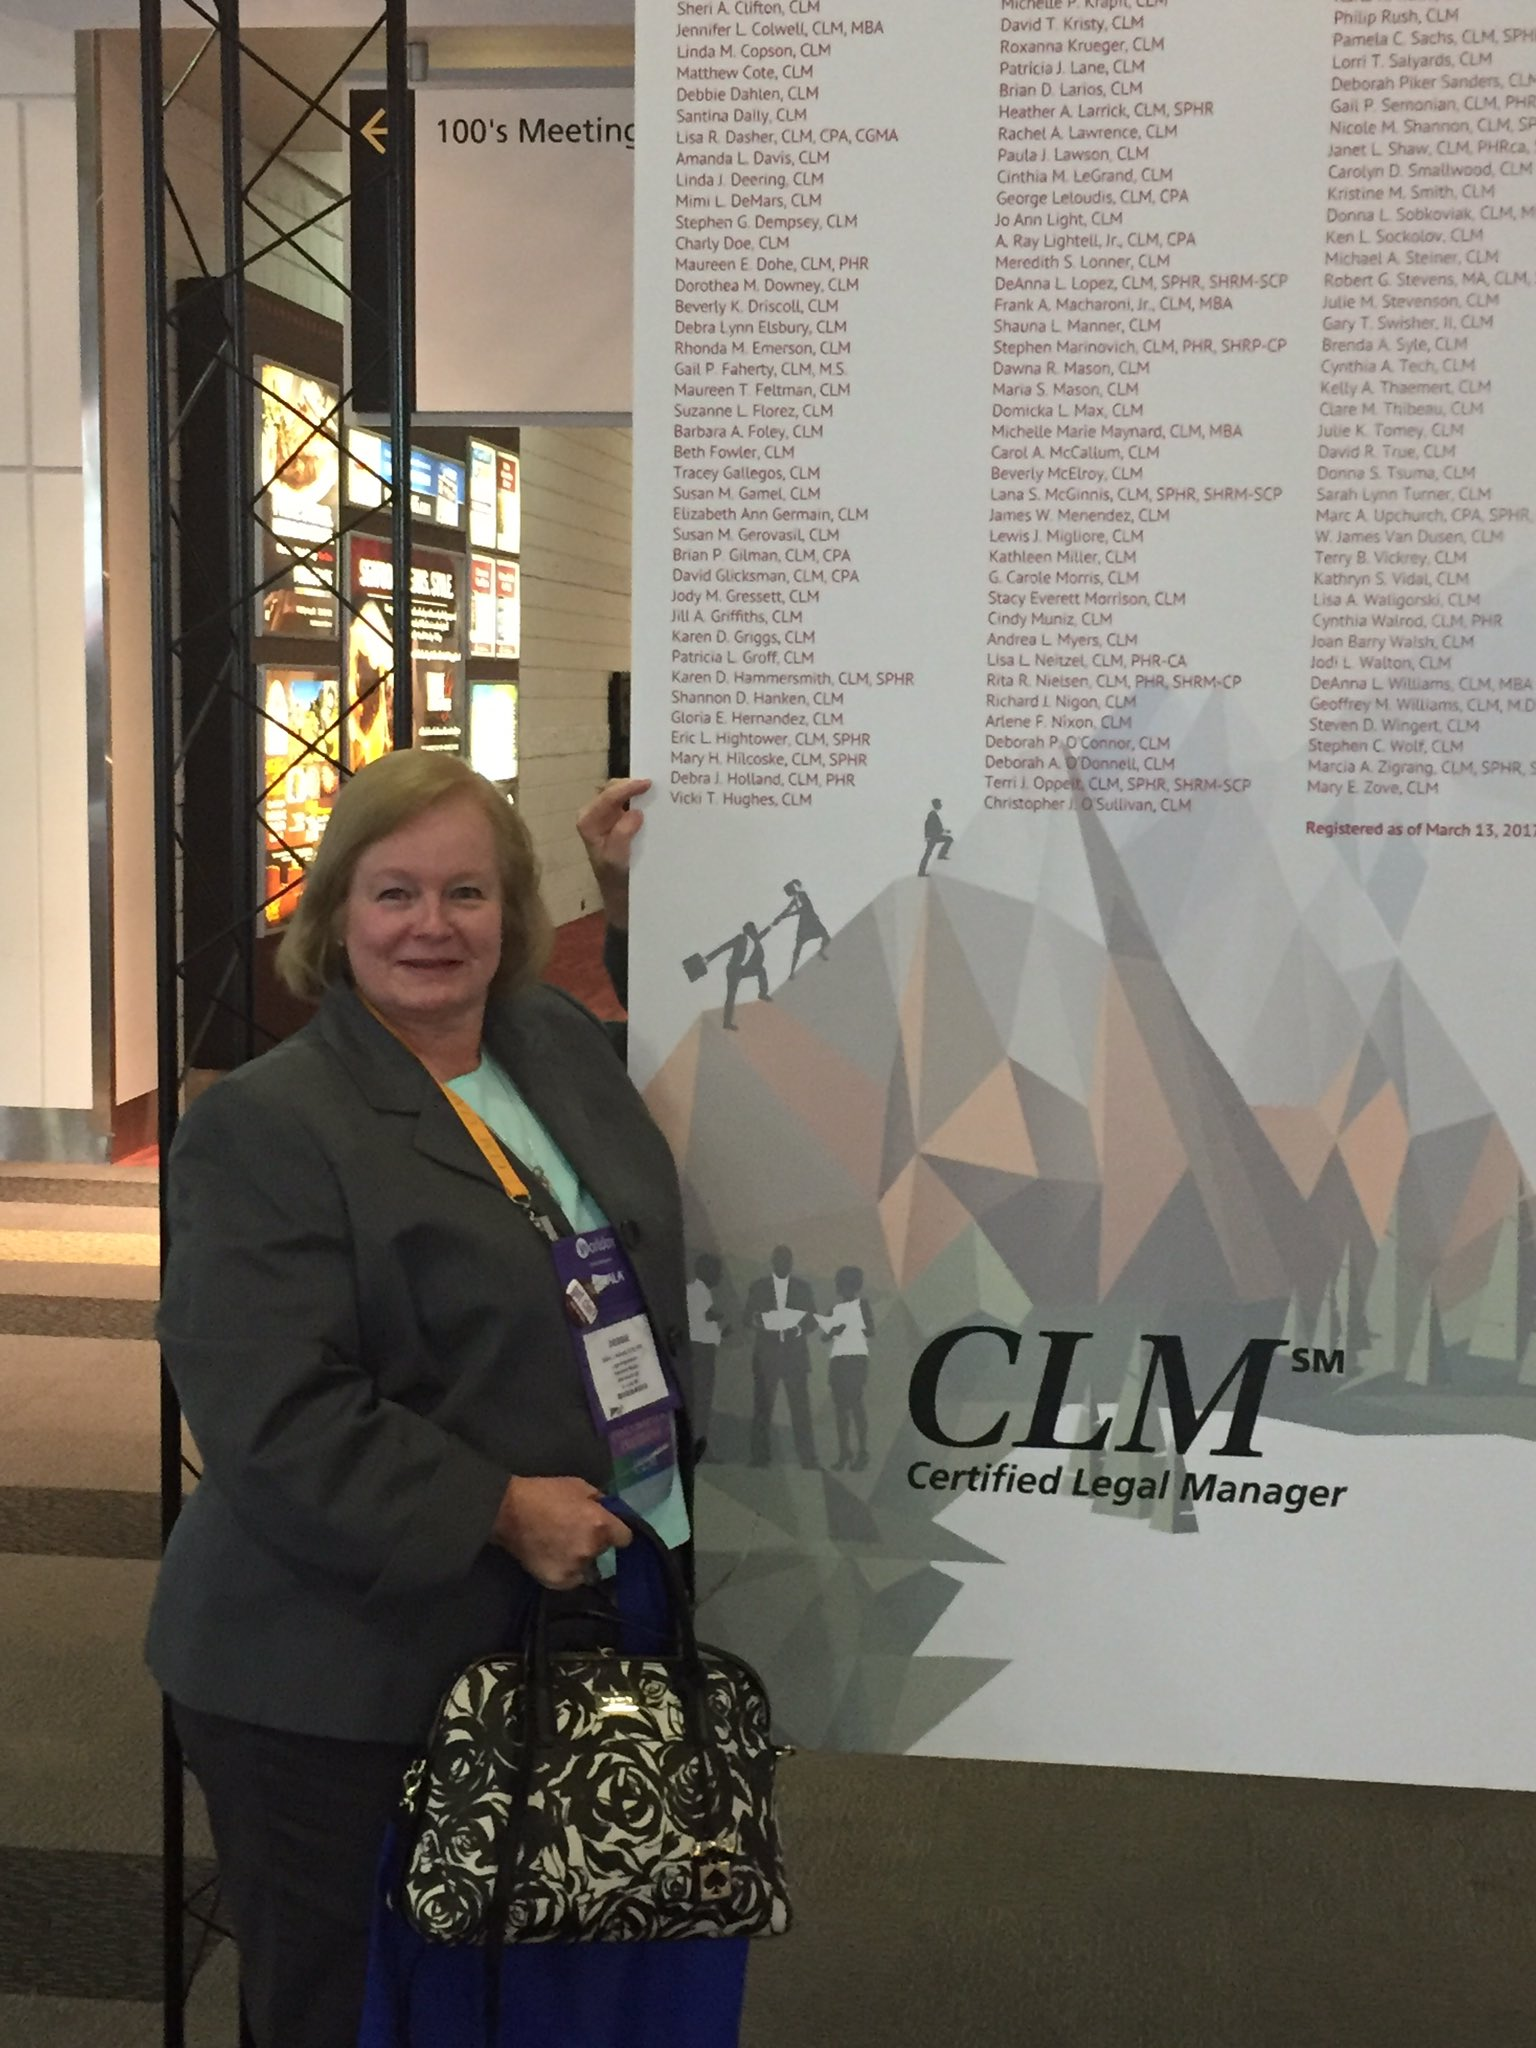 Happy to be counted among the CLMs at the #ALAConf17 https://t.co/w9DU6tVlKx